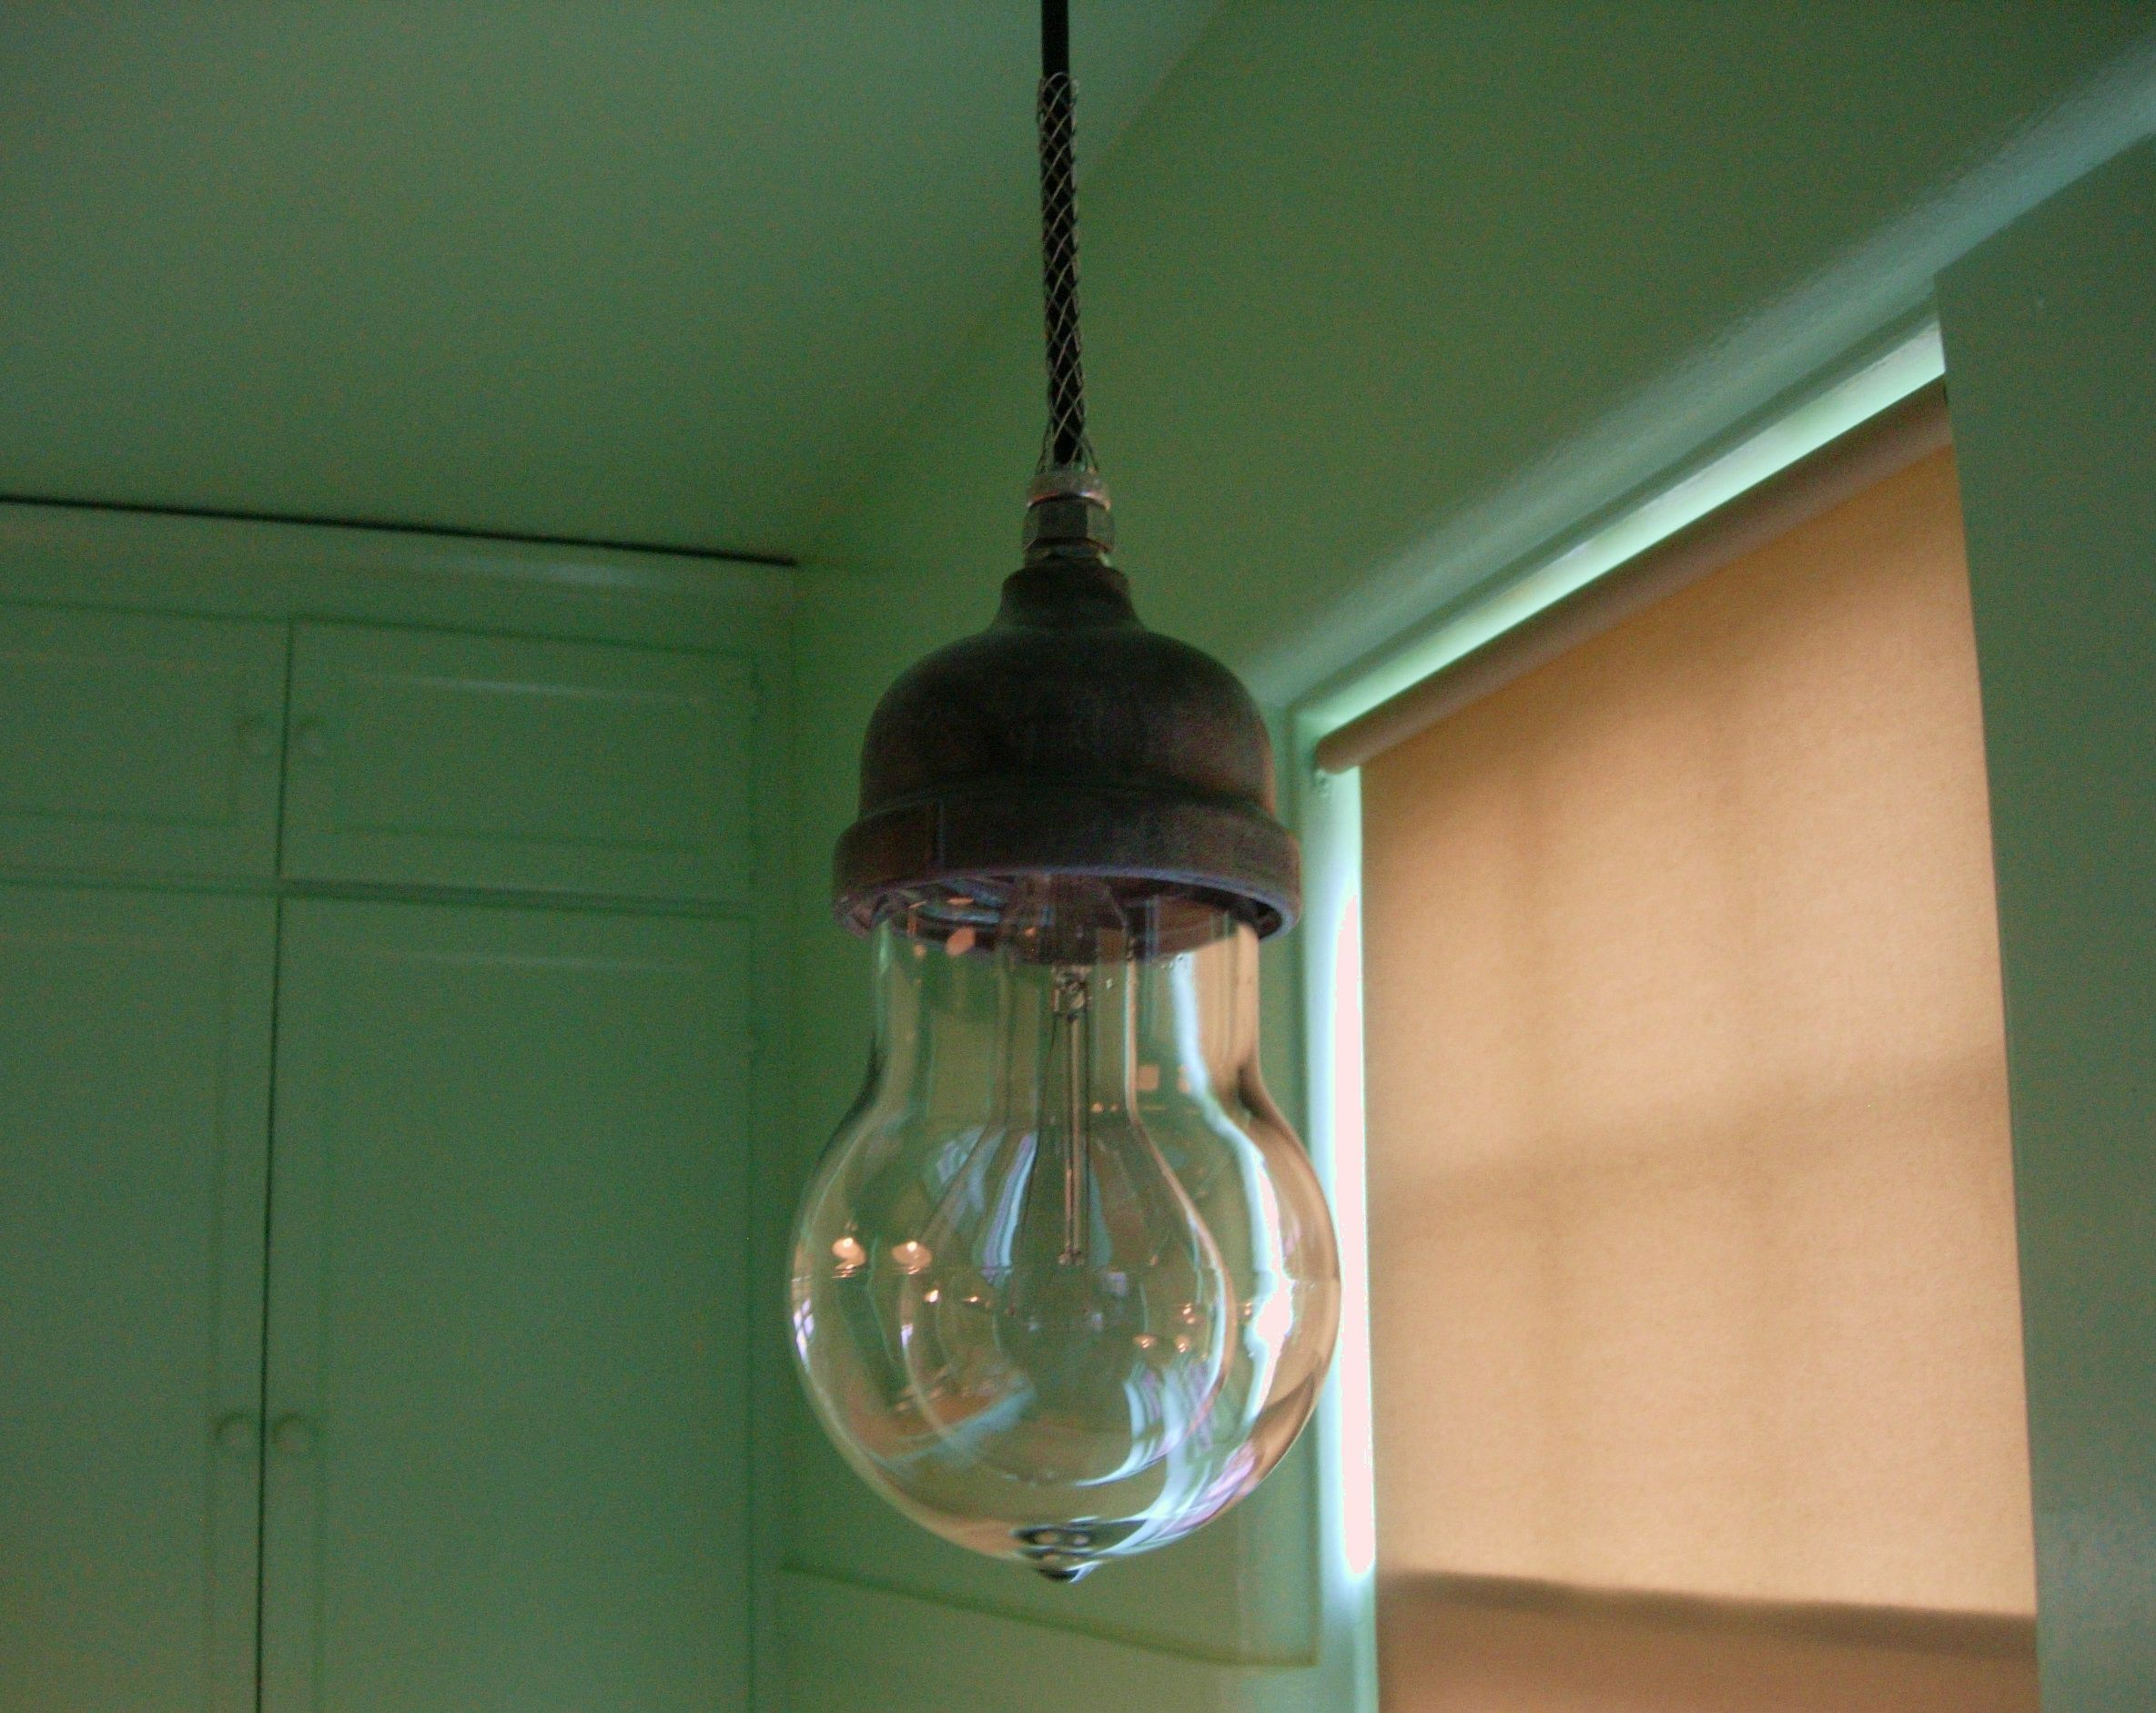 Vintage Lighting Exclusively Thru The Barn